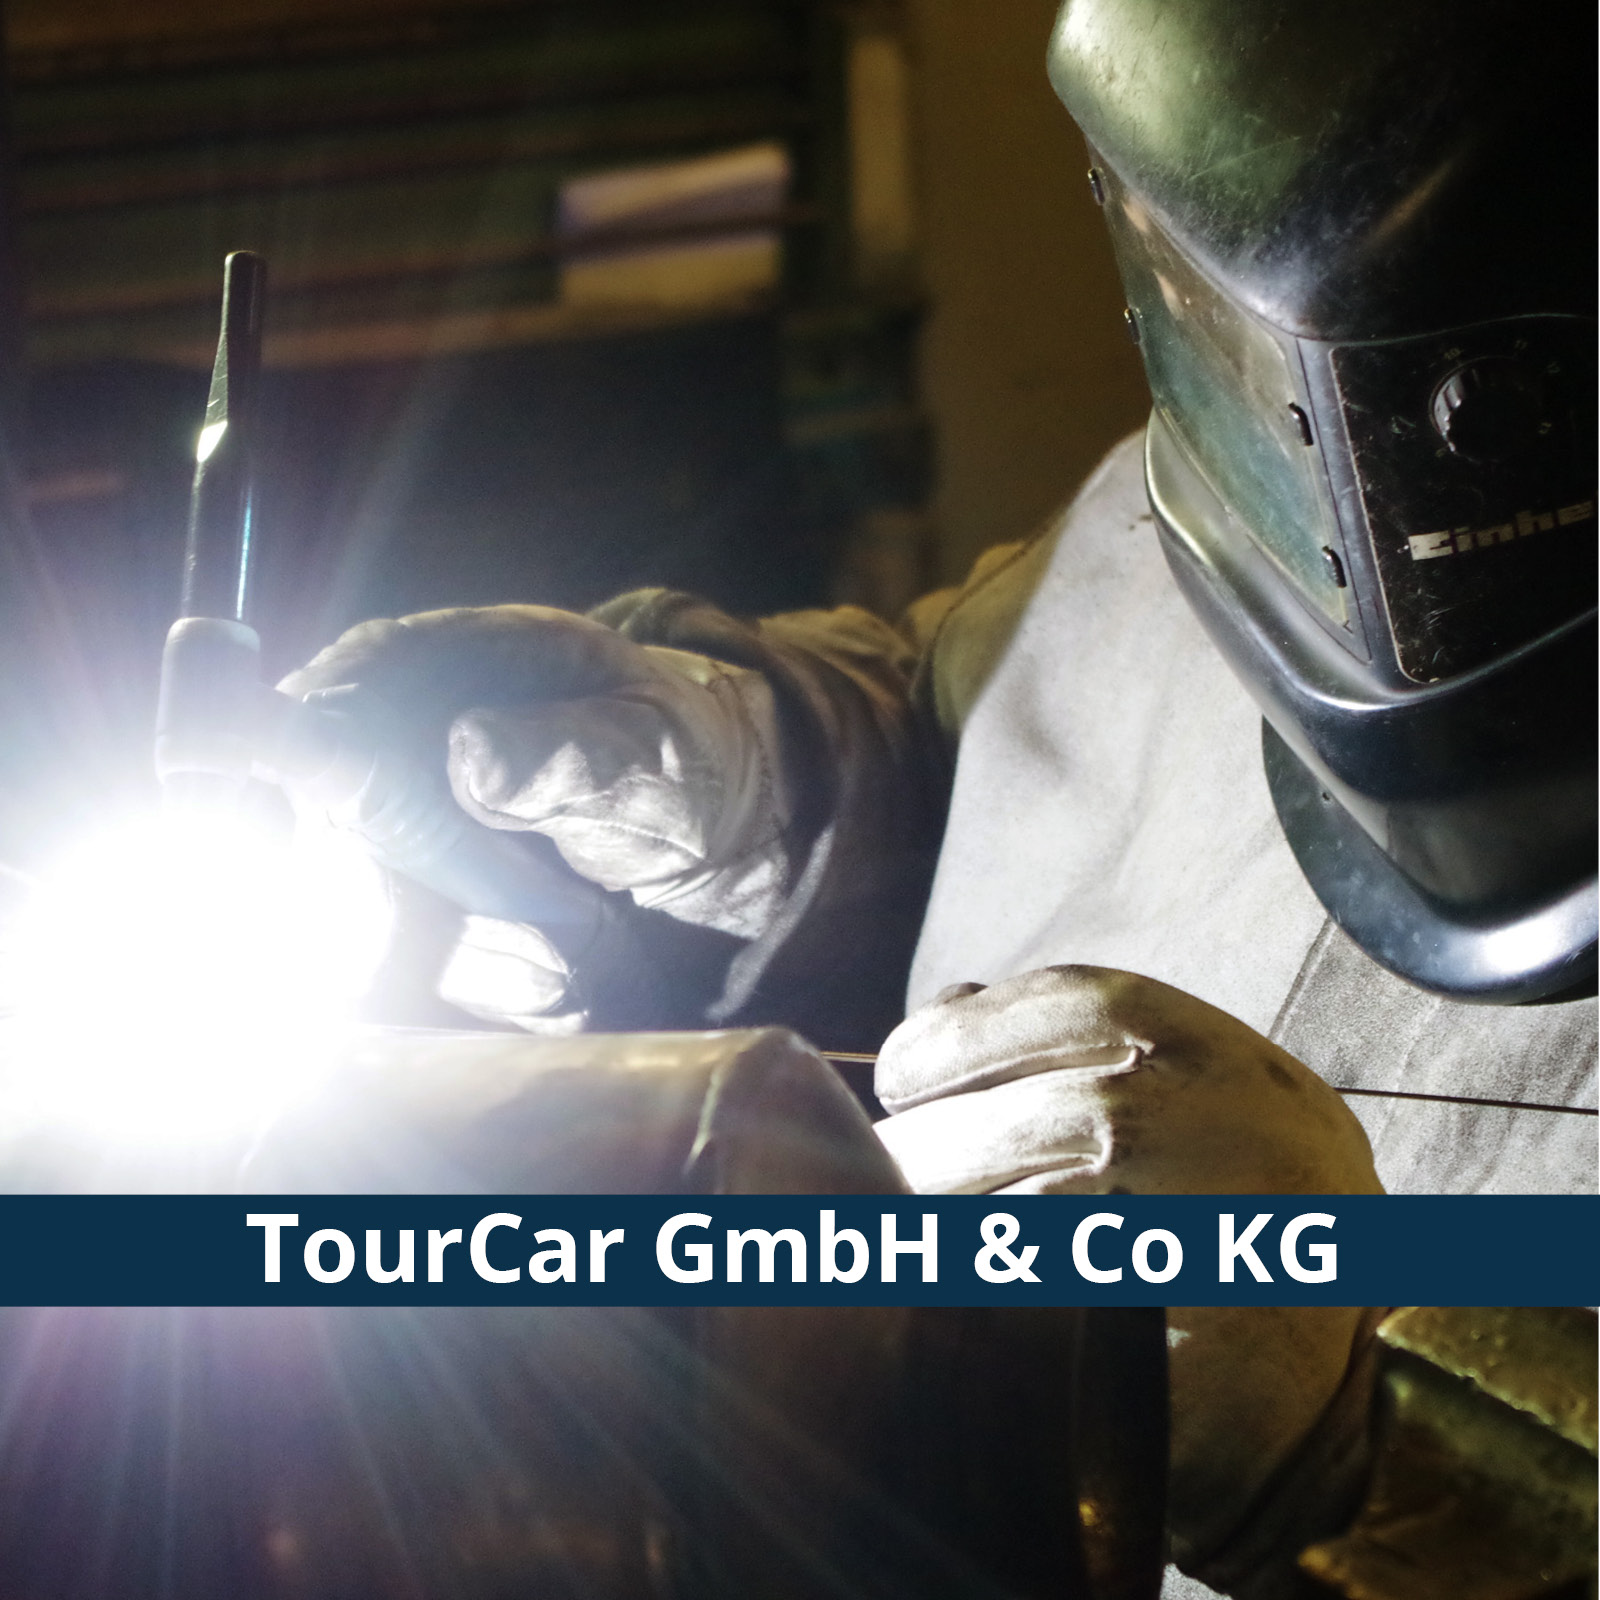 TourCar GmbH & CO KG